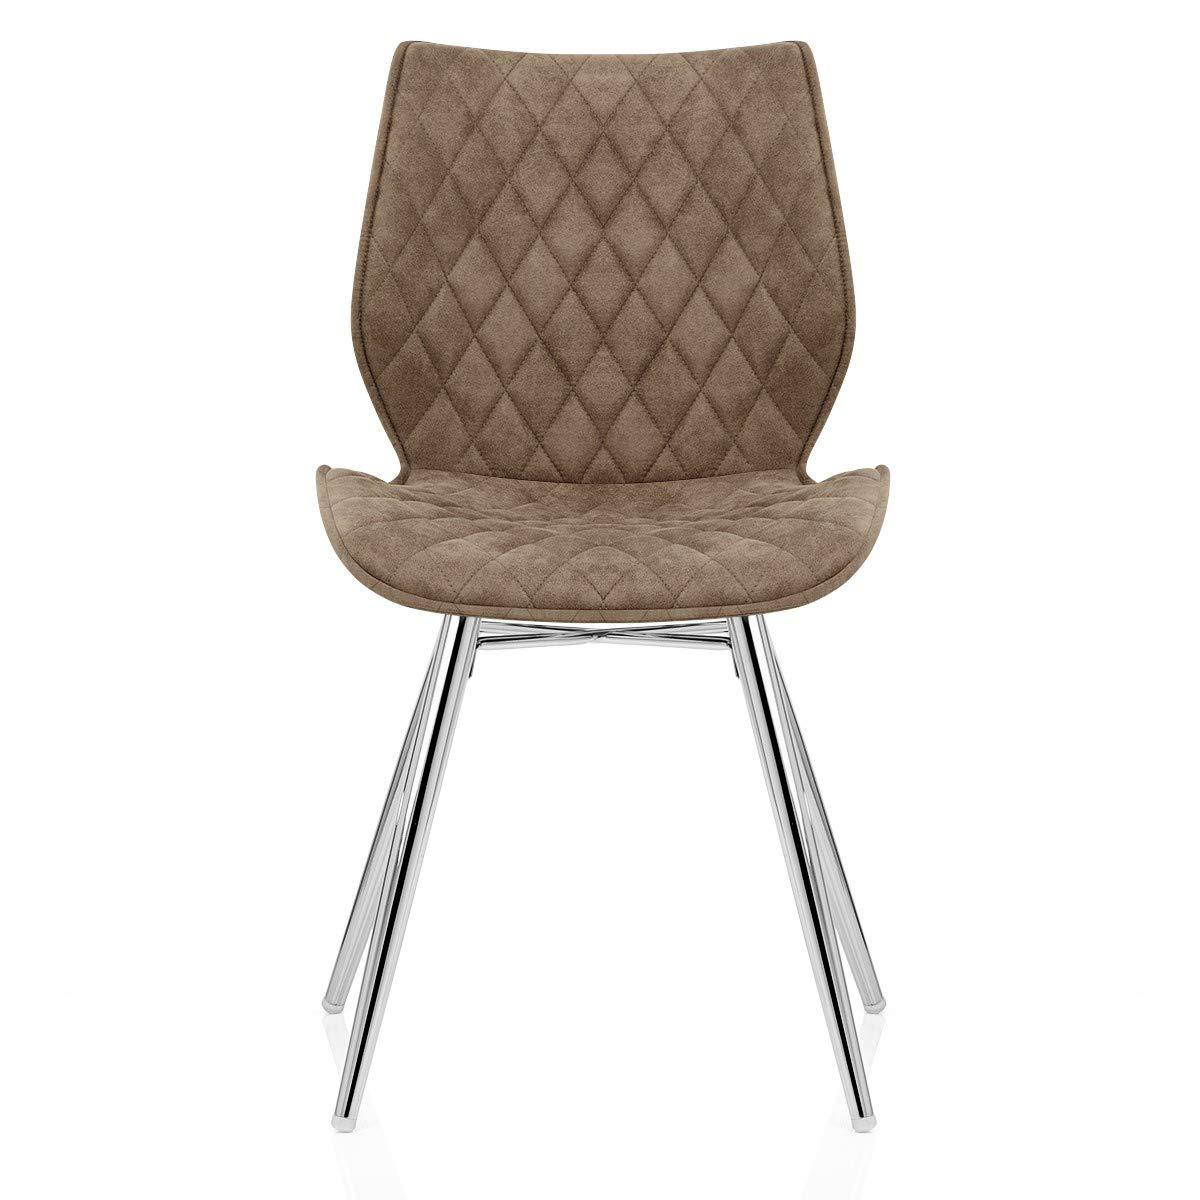 Default Title Pale Pearl Grey / Beige Brown Diamond Seam Back Modern Wipe Clean Leather Fabric Dining Chair Silver Chrome Legs - Pebble & Leaf HomeFurniture